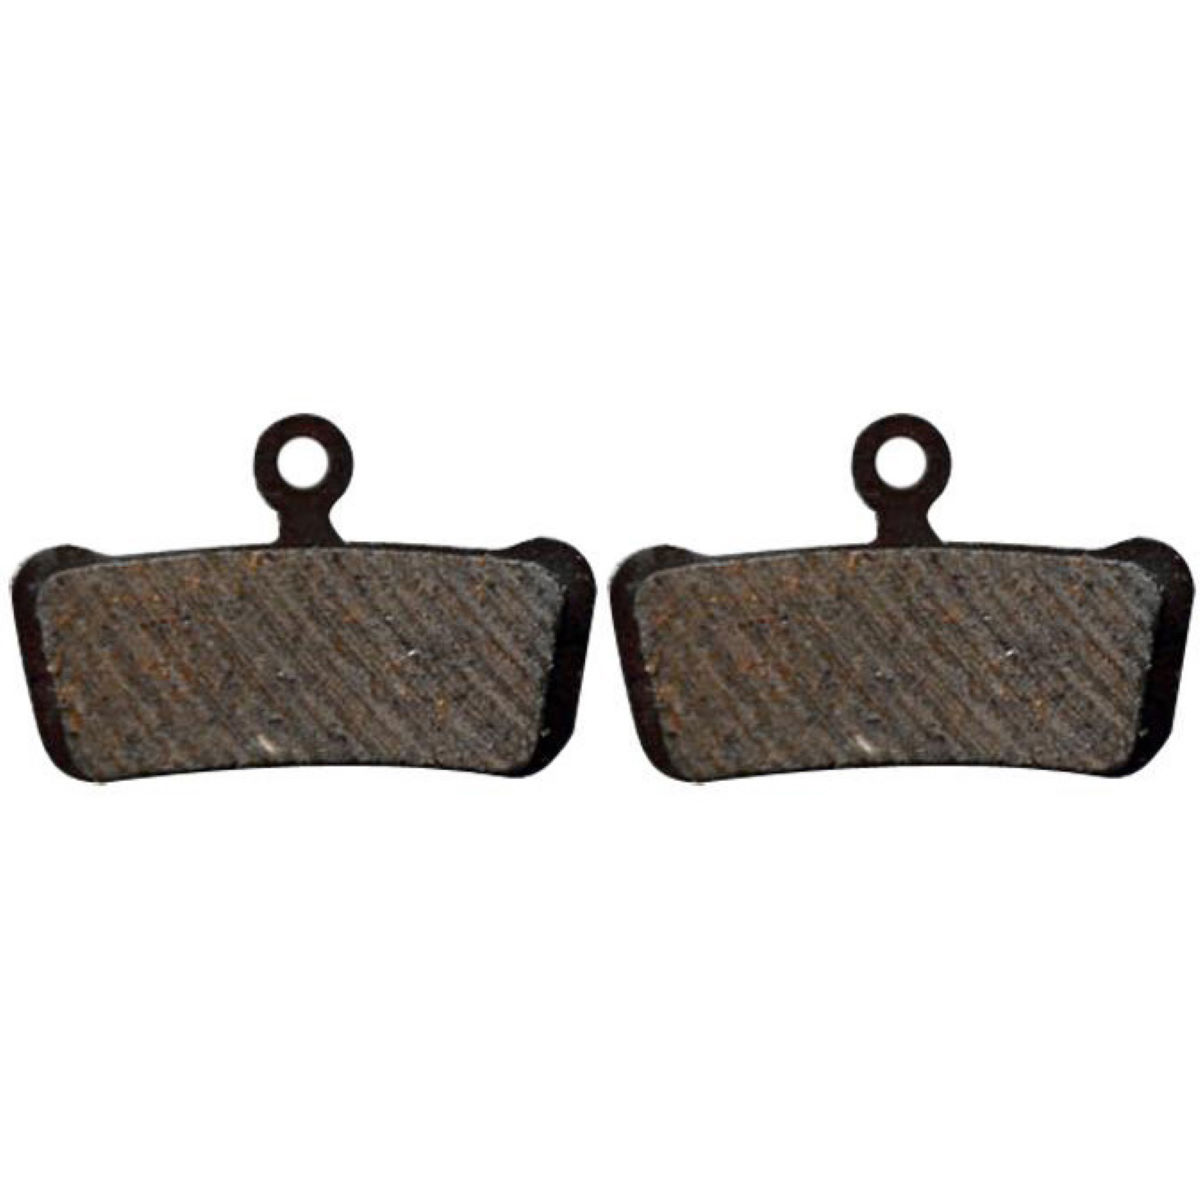 Avid Avid Guide/Trail Disc Brake Pads - Steel - Pastillas para frenos de disco